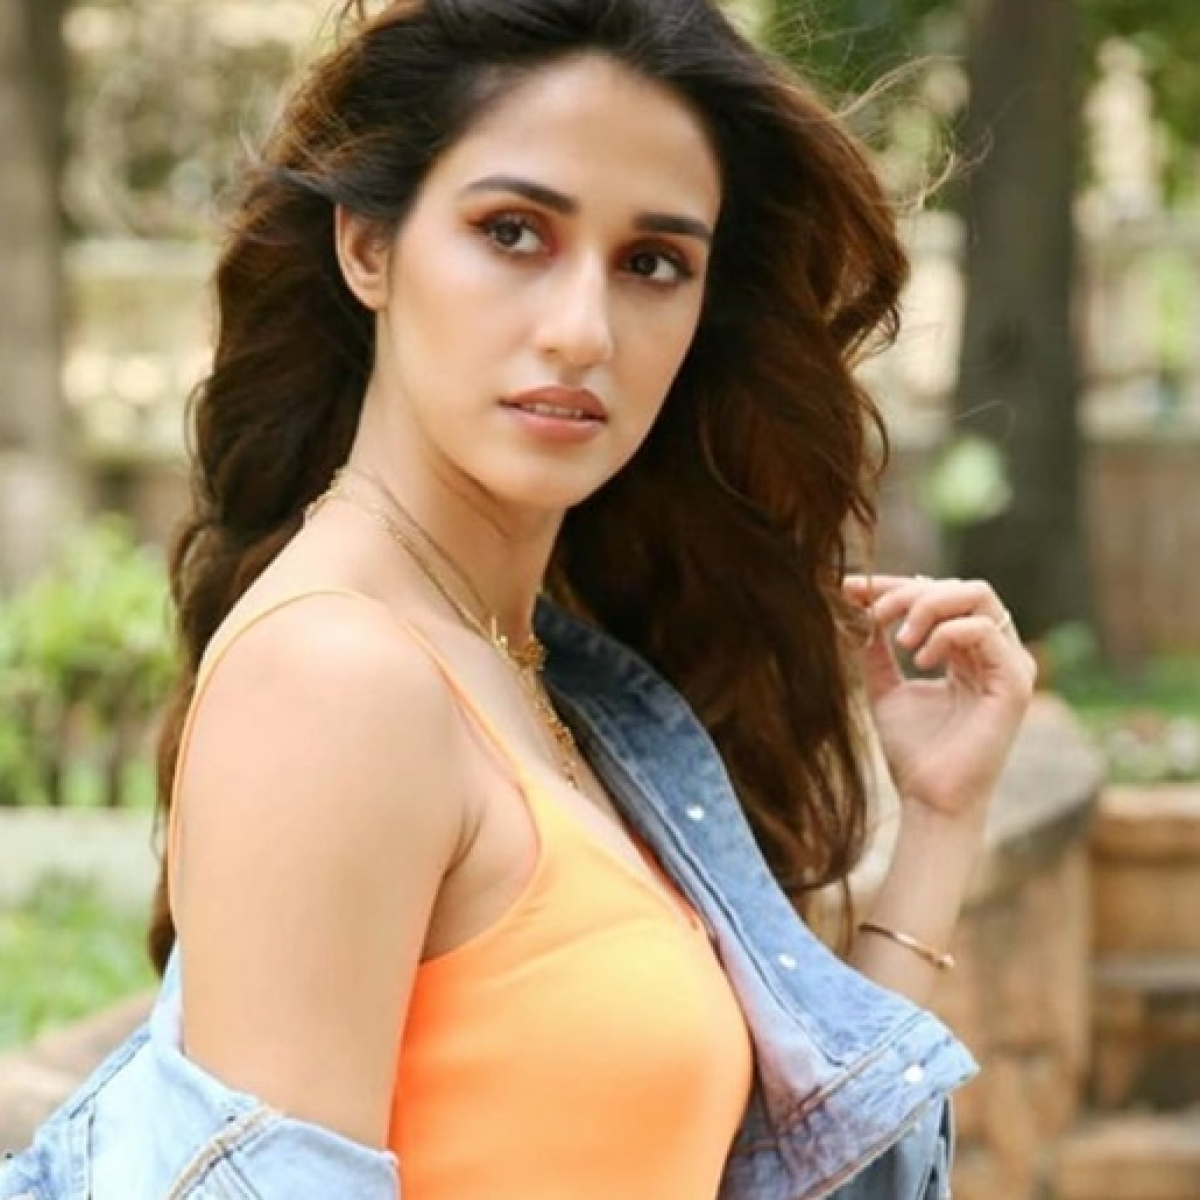 Watch Video: Disha Patani's bodyguard pushes, gets into a brawl with paparazzi